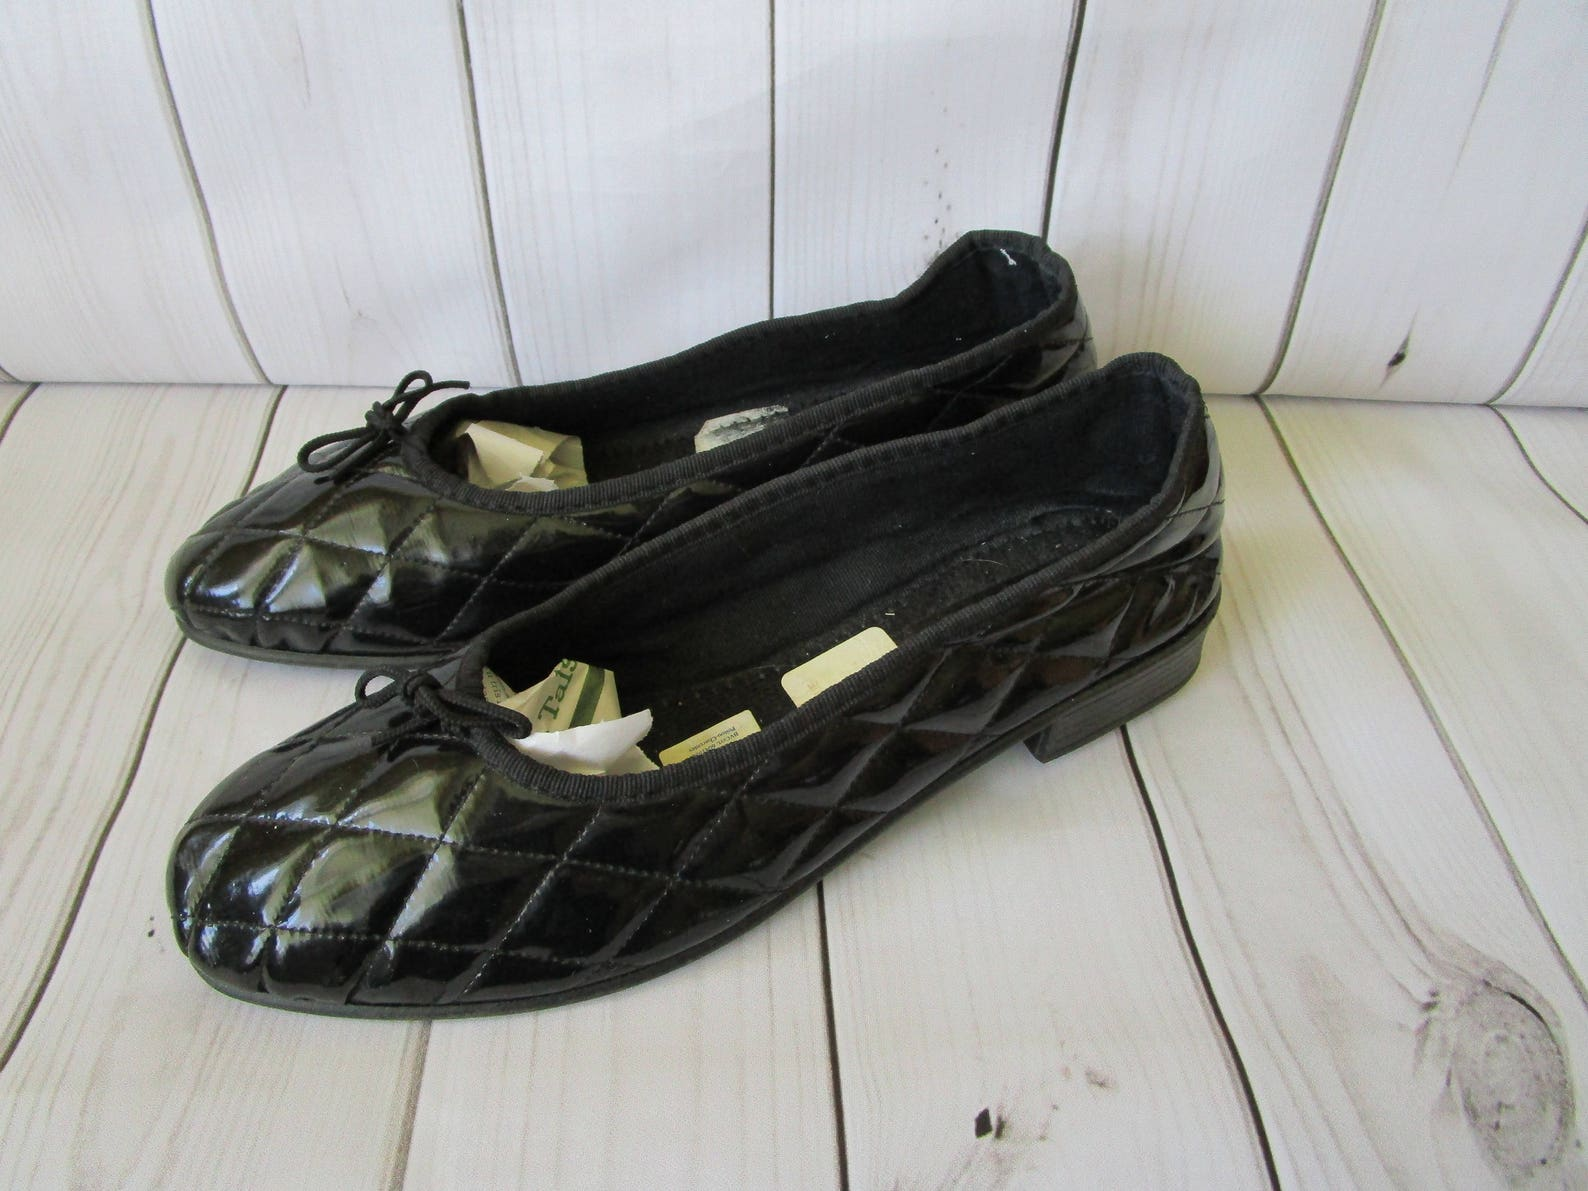 black quilted flat shoes patent leather ballet shoes vintage french shoe original 1980s vintage black quilted court shoes size 8